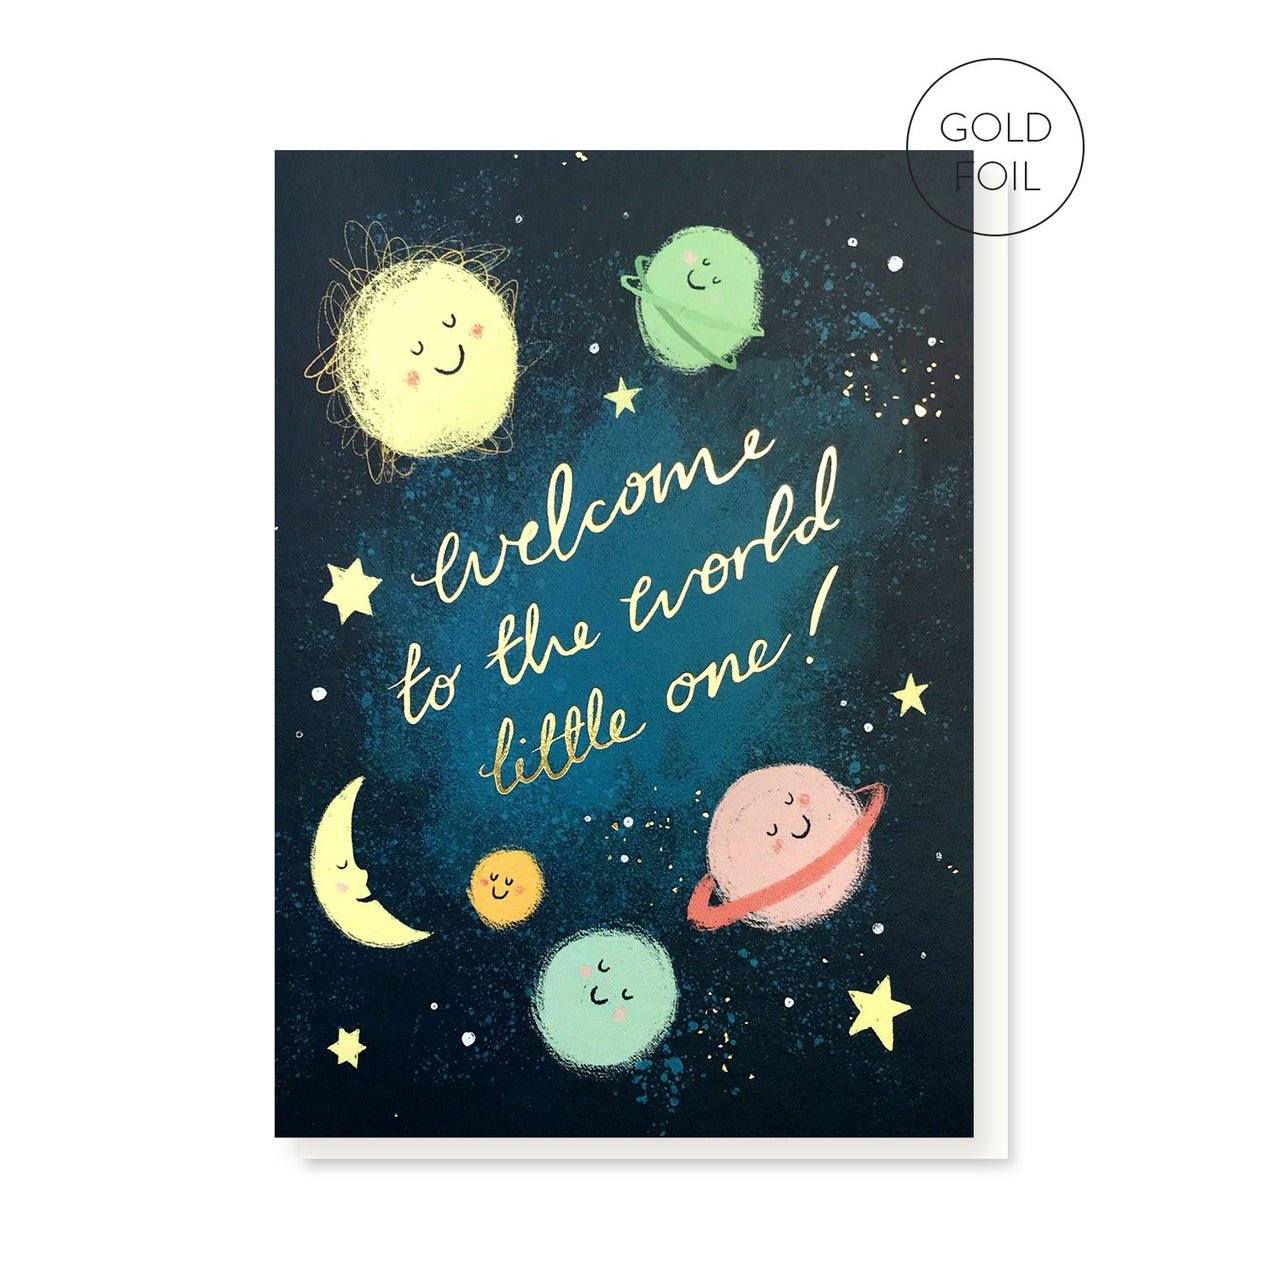 Welcome Little One new baby greeting card by Stormy Knight